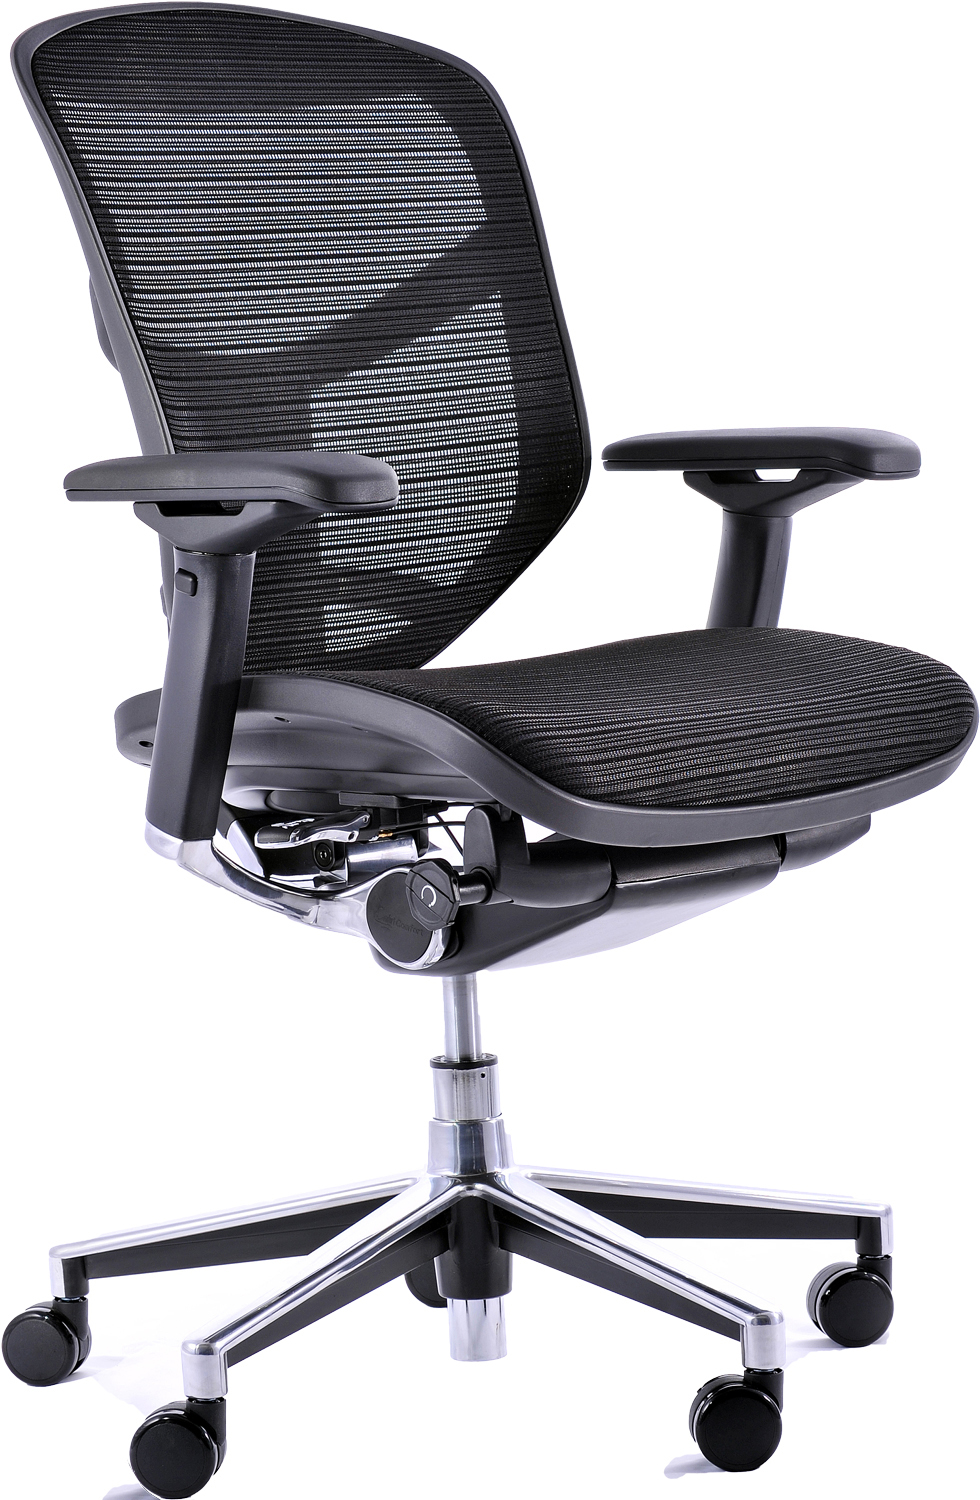 Ergo Workplace Chair. Ergo Office Chair